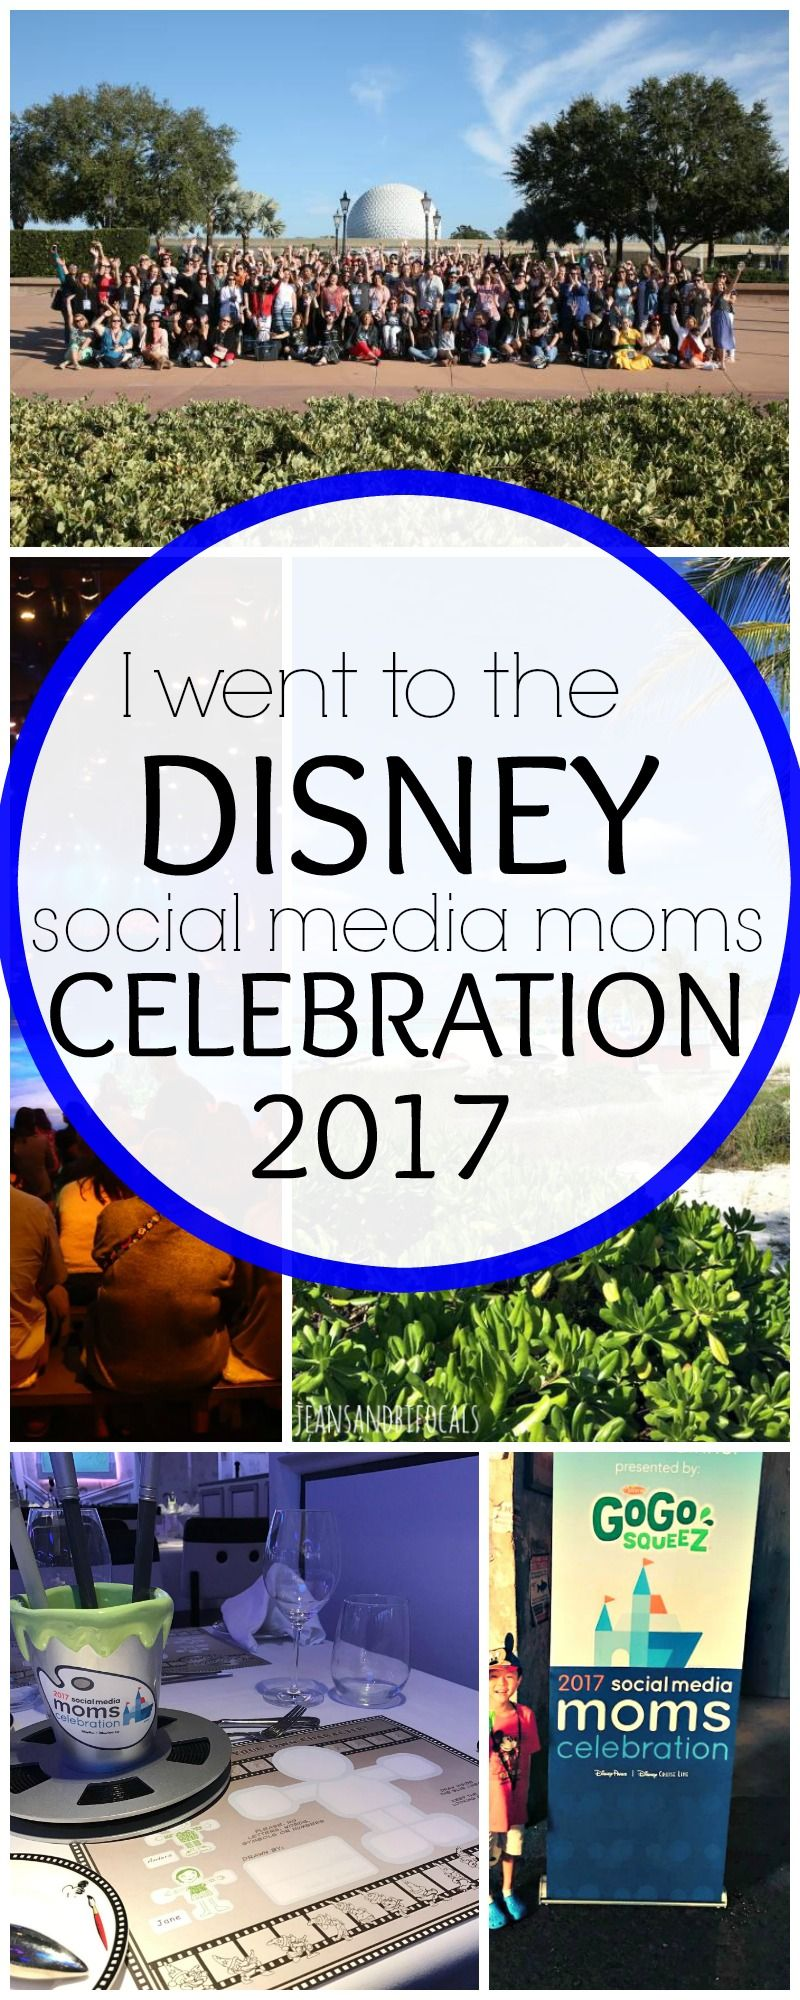 Here's what I got out of the 2017 Disney Social Media Moms Celebration...and a little sneak peak at what we did during this whirlwind 5-day trip. |Disney social media moms celebration|Disney Social media moms|Disney Moms|Disney mom|vacation planning|Disney planning ideas|Disney trip ideas|Disney world ideas|Disney cruise ideas|Disney vacation tips|Disney cruise tips|Disney wonder tips|Disney World Florida|Disney Family Vacations|Disney's Animal Kingdom|Disney's Hollywood Studios|